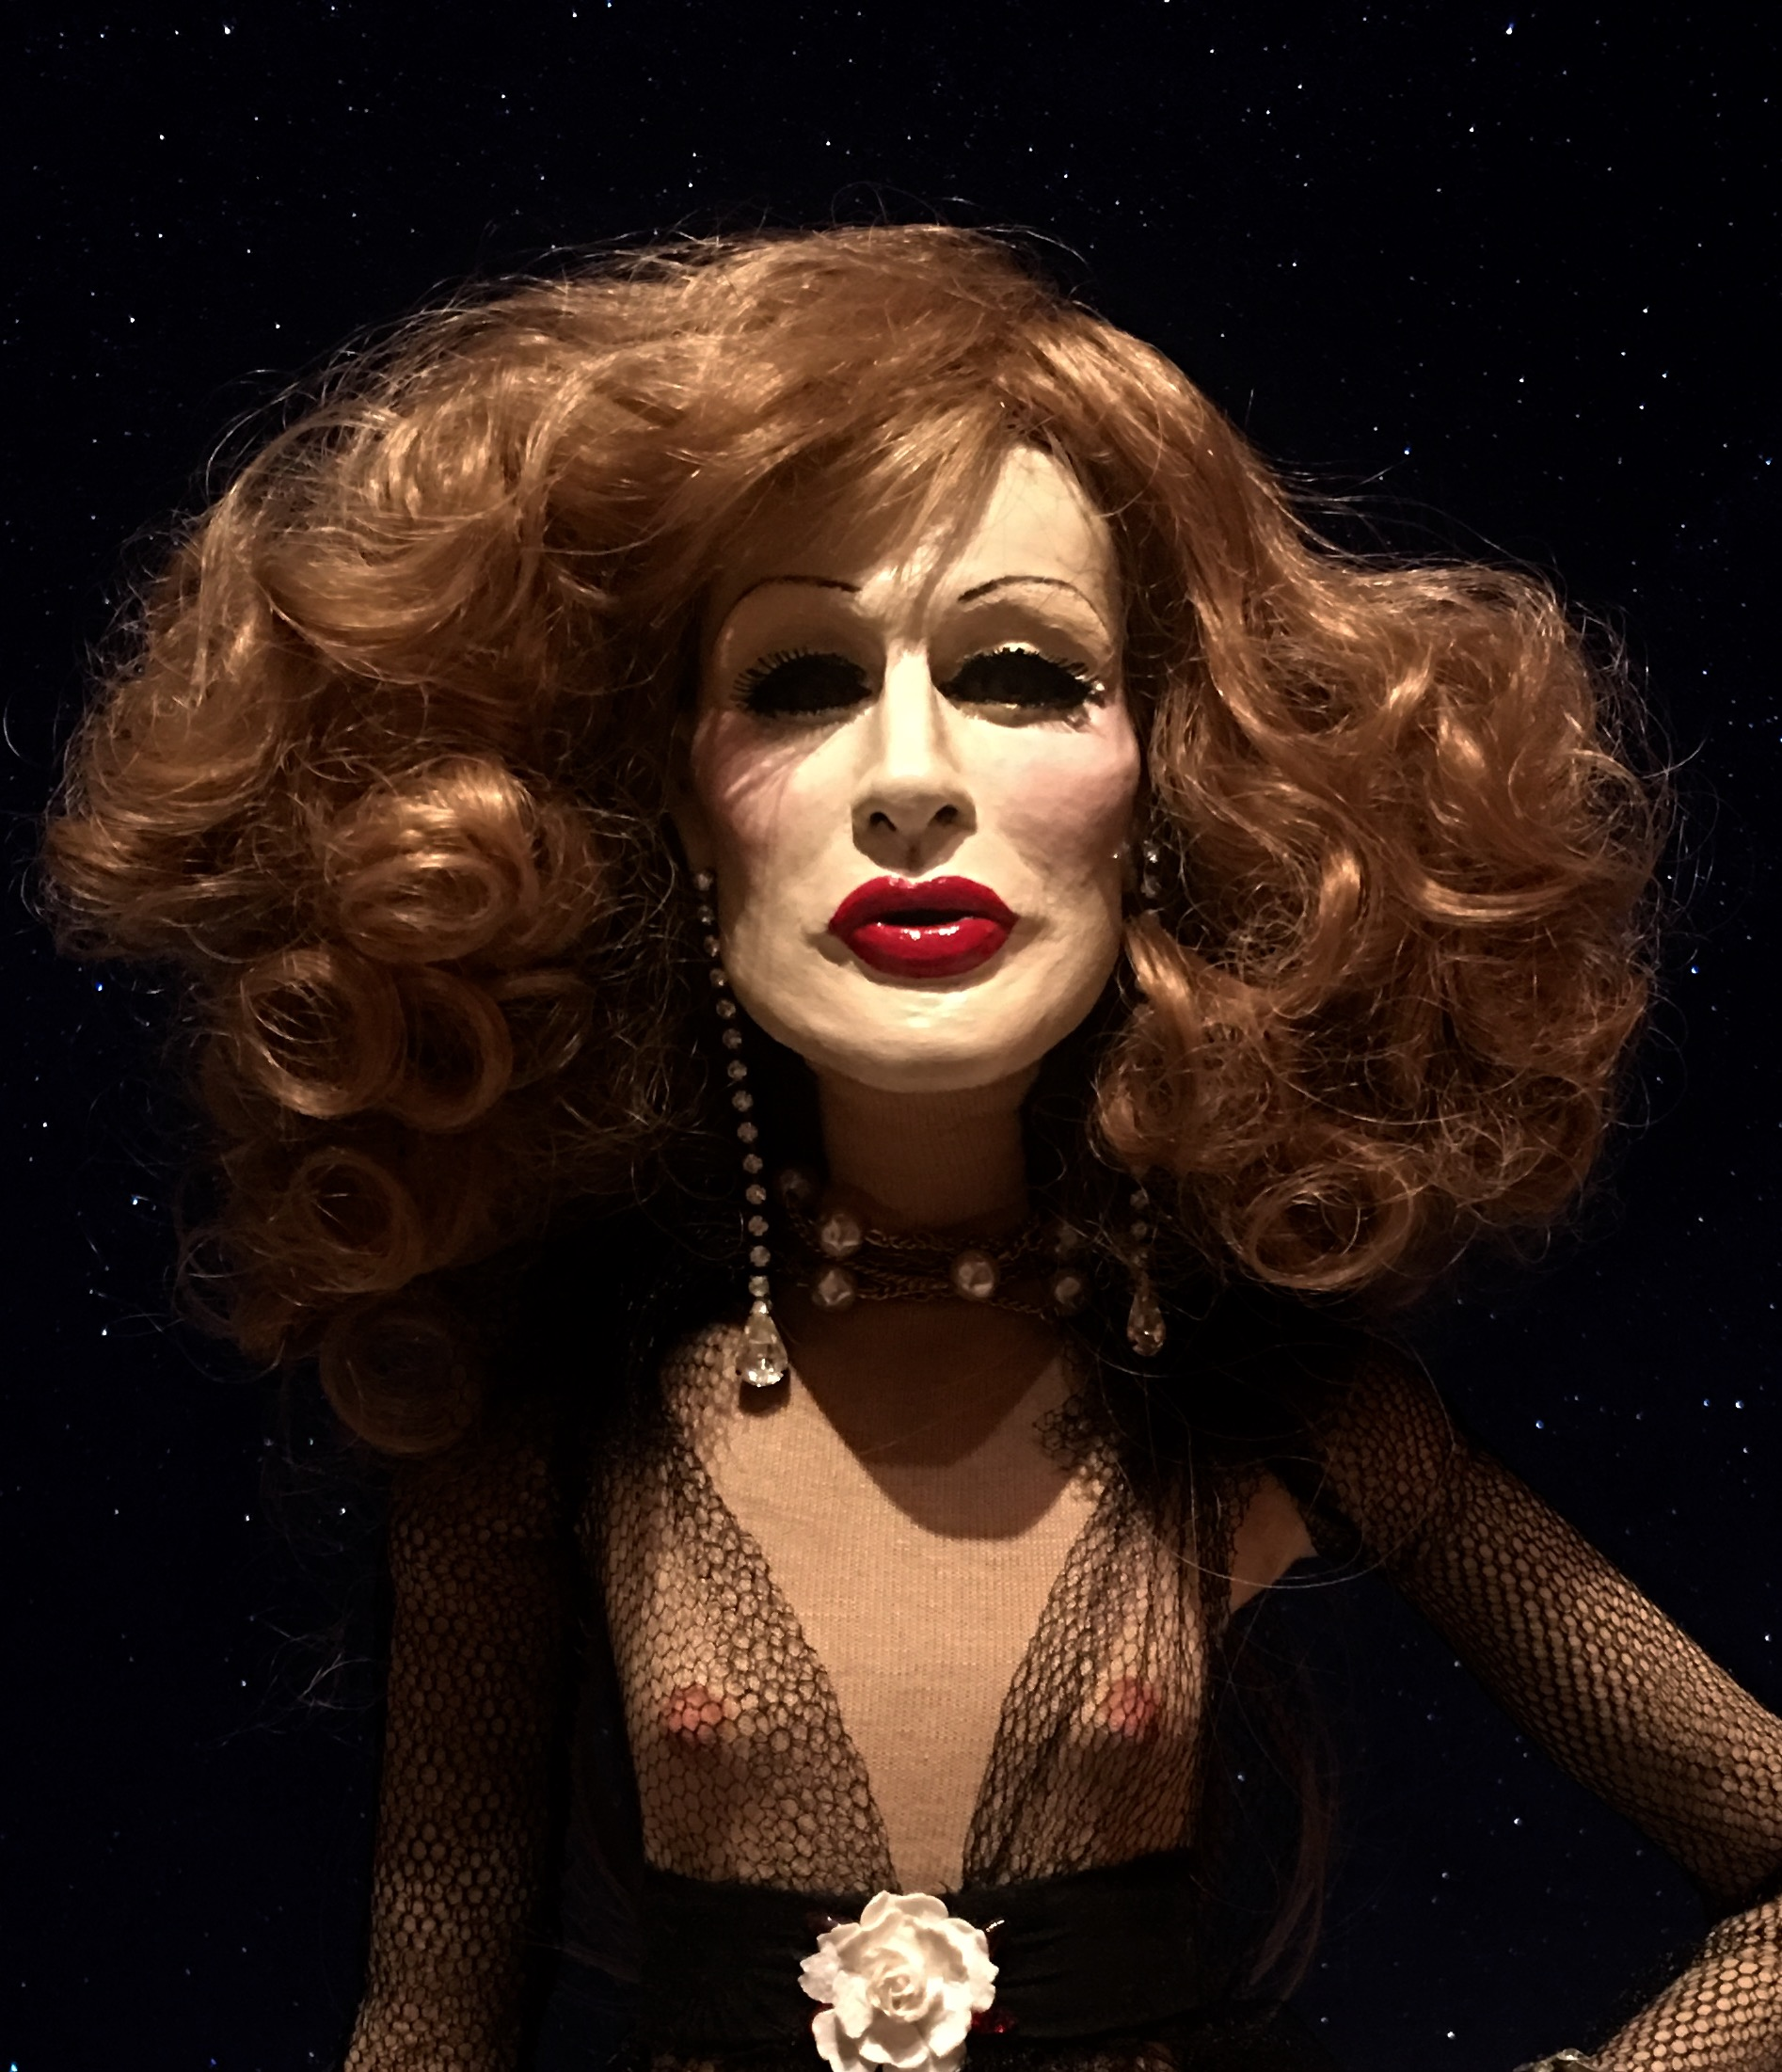 Close-up image of Greek Lankton's Candy Darling celebrity doll